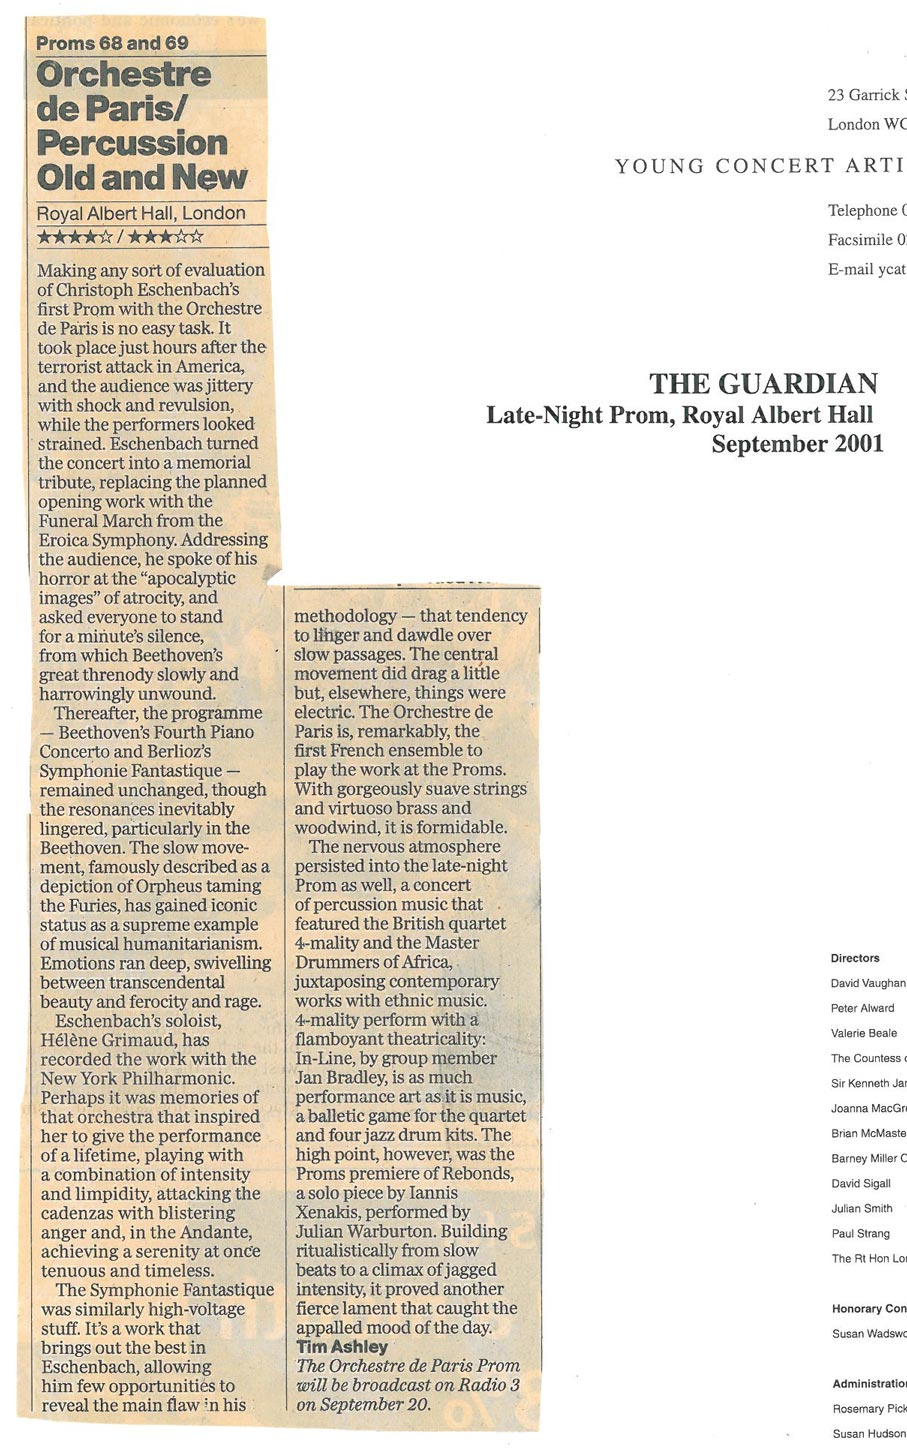 Review, 2001, The Guardian